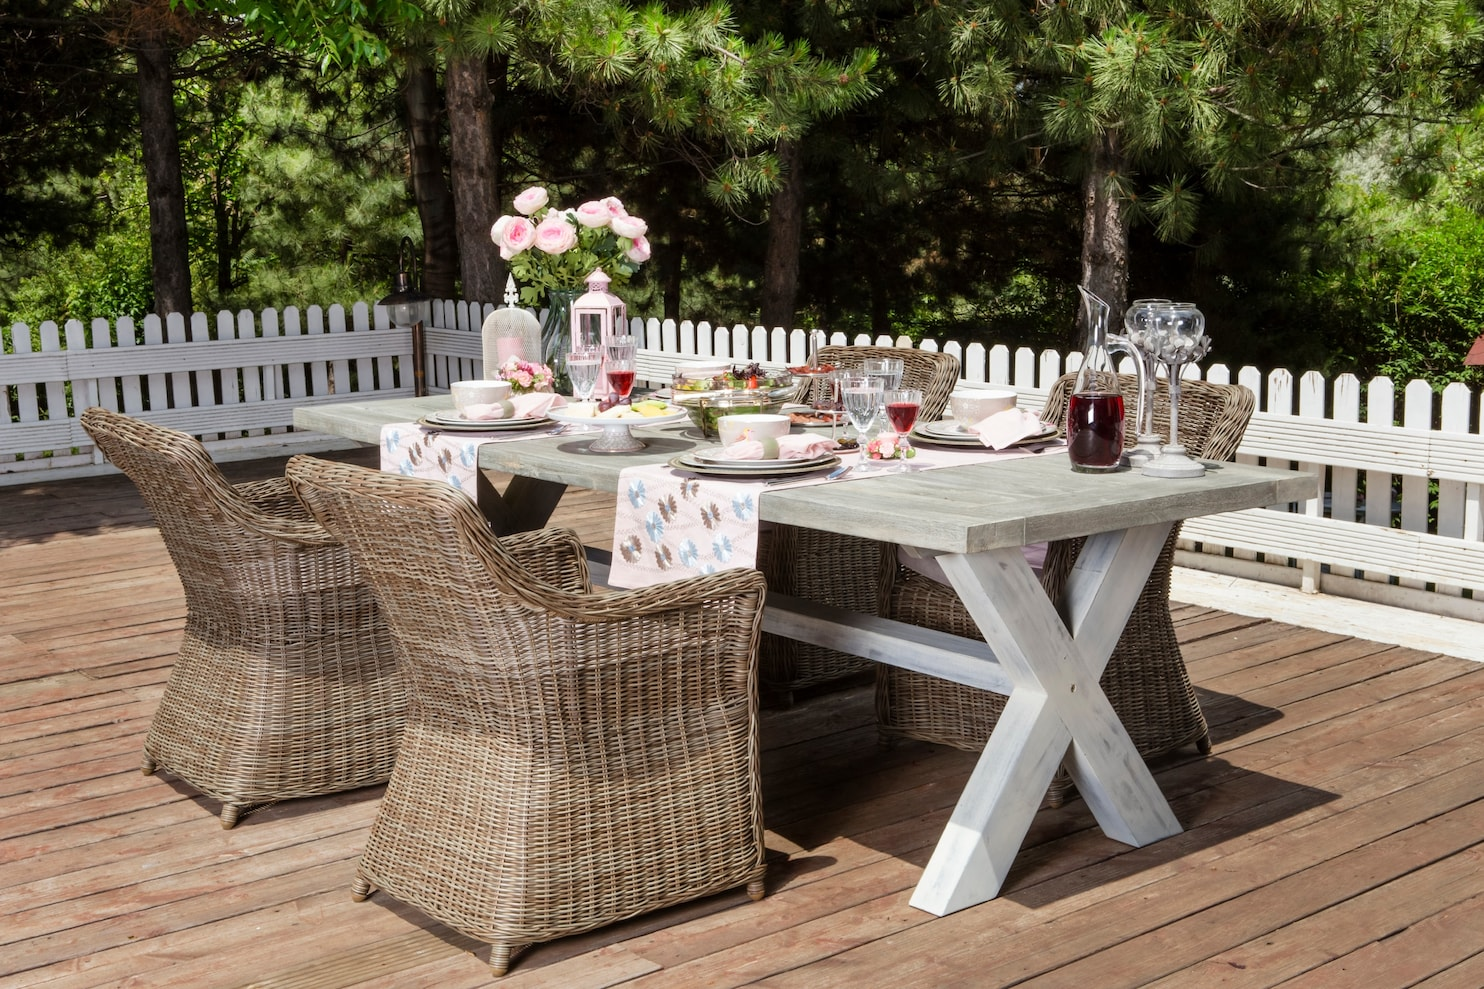 Patio Furniture Table And Chairs Buying Outdoor Furniture A Guide To Fabrics And Materials That